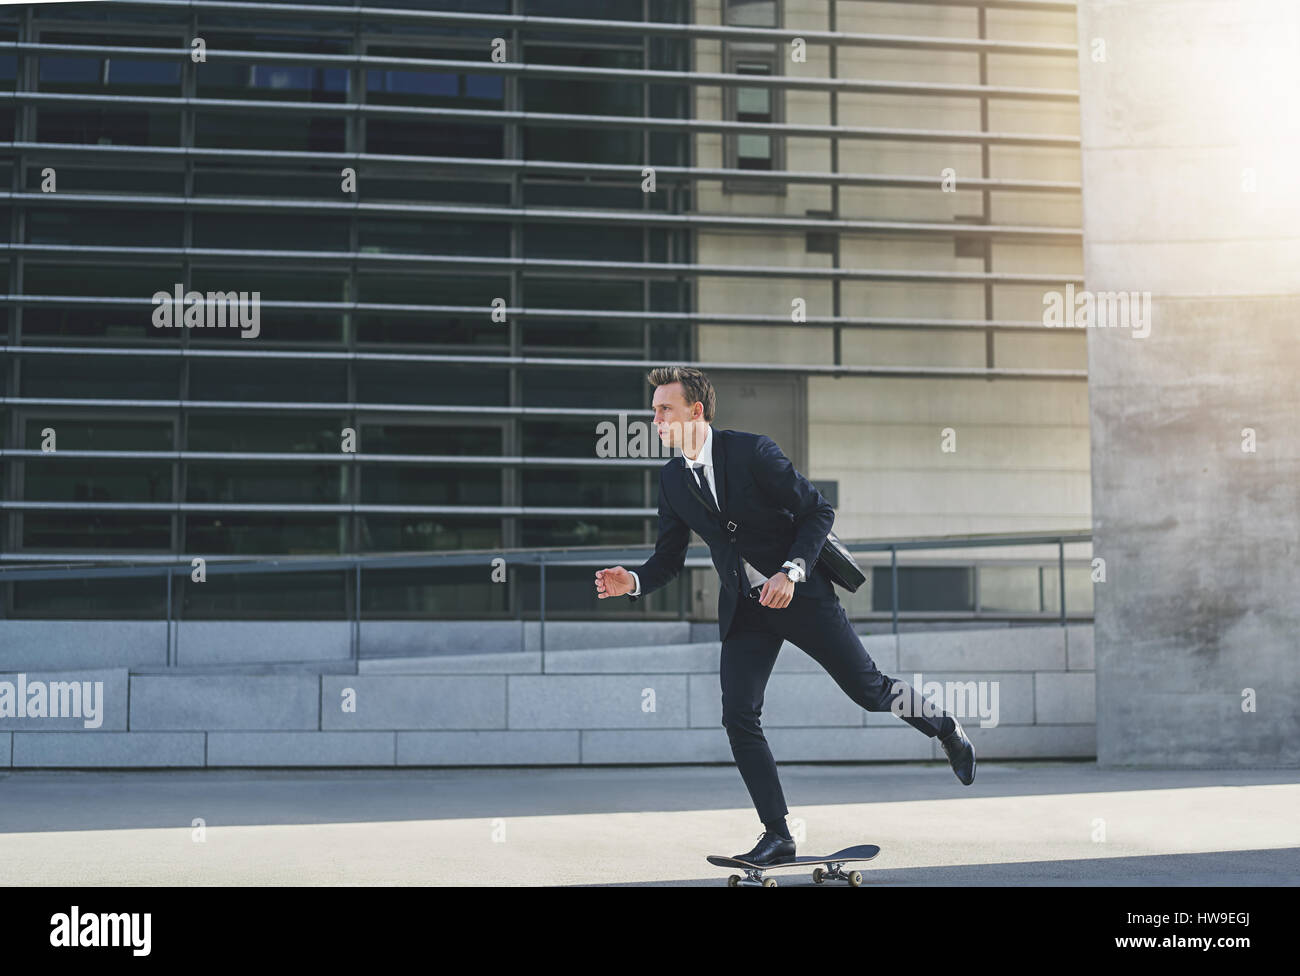 Businessman in a suit on a skateboard pushing himself around - Stock Image